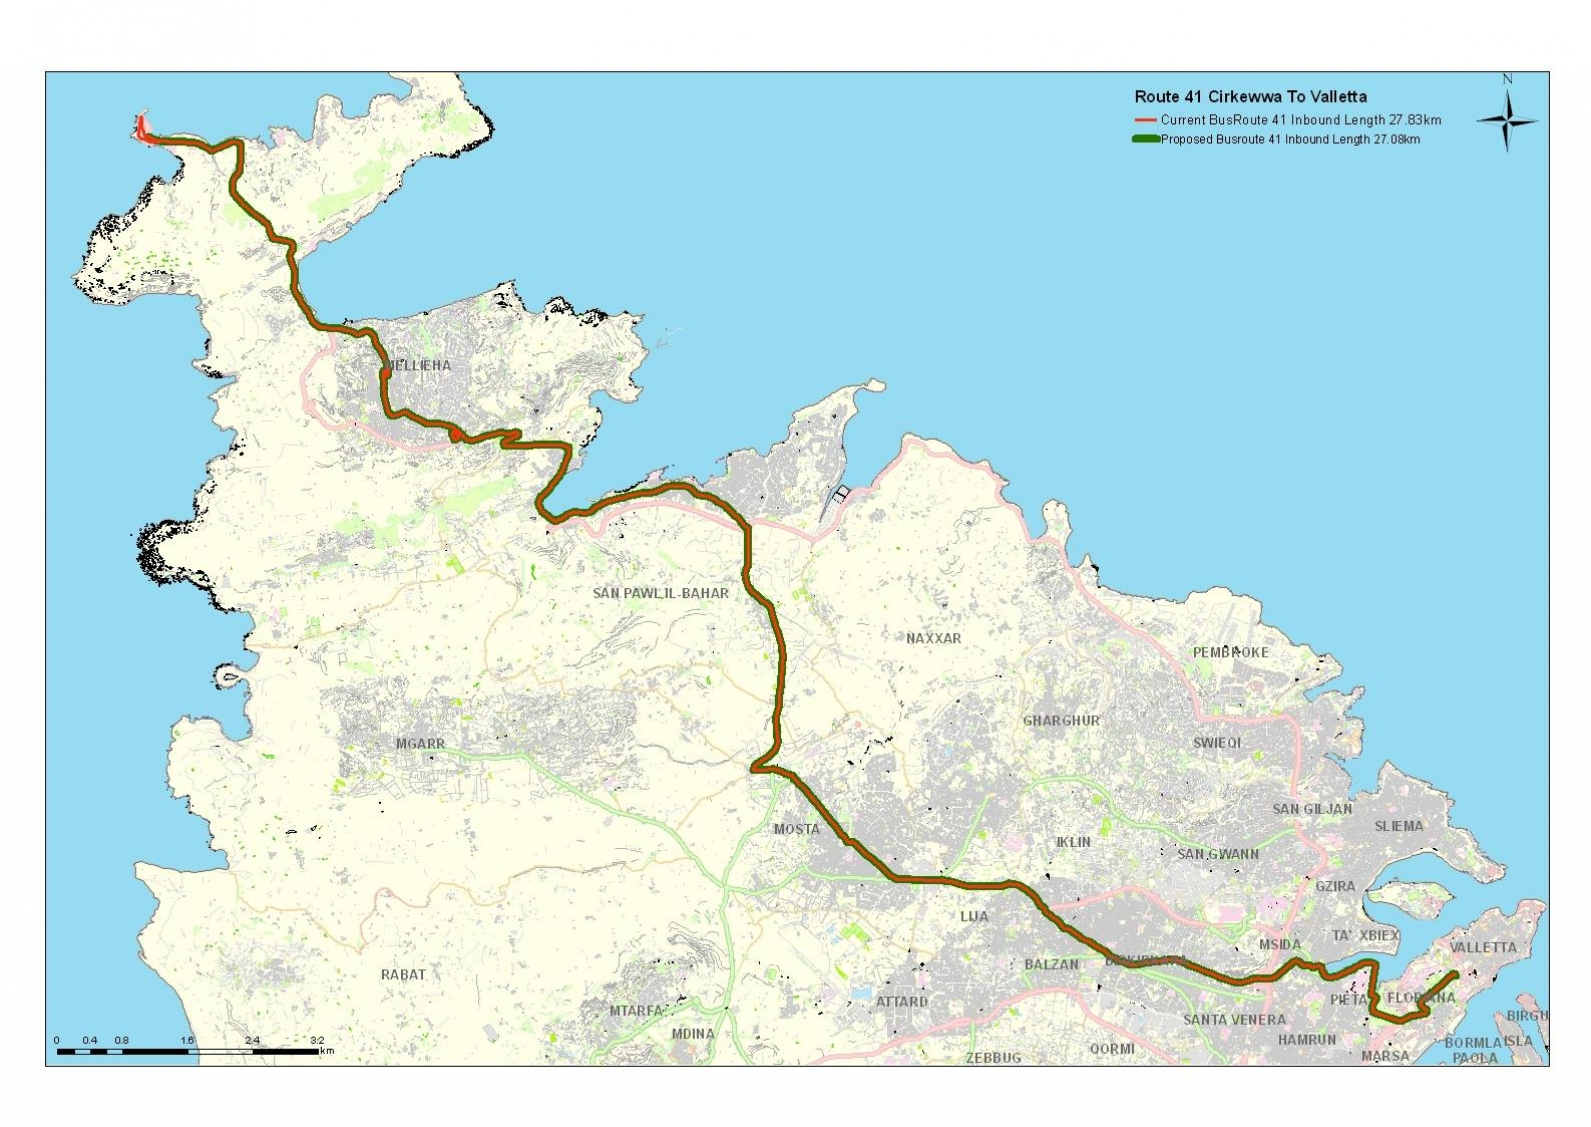 Land-current-network-routes-and-schedules-Cirkewwa-mellieha-sliema